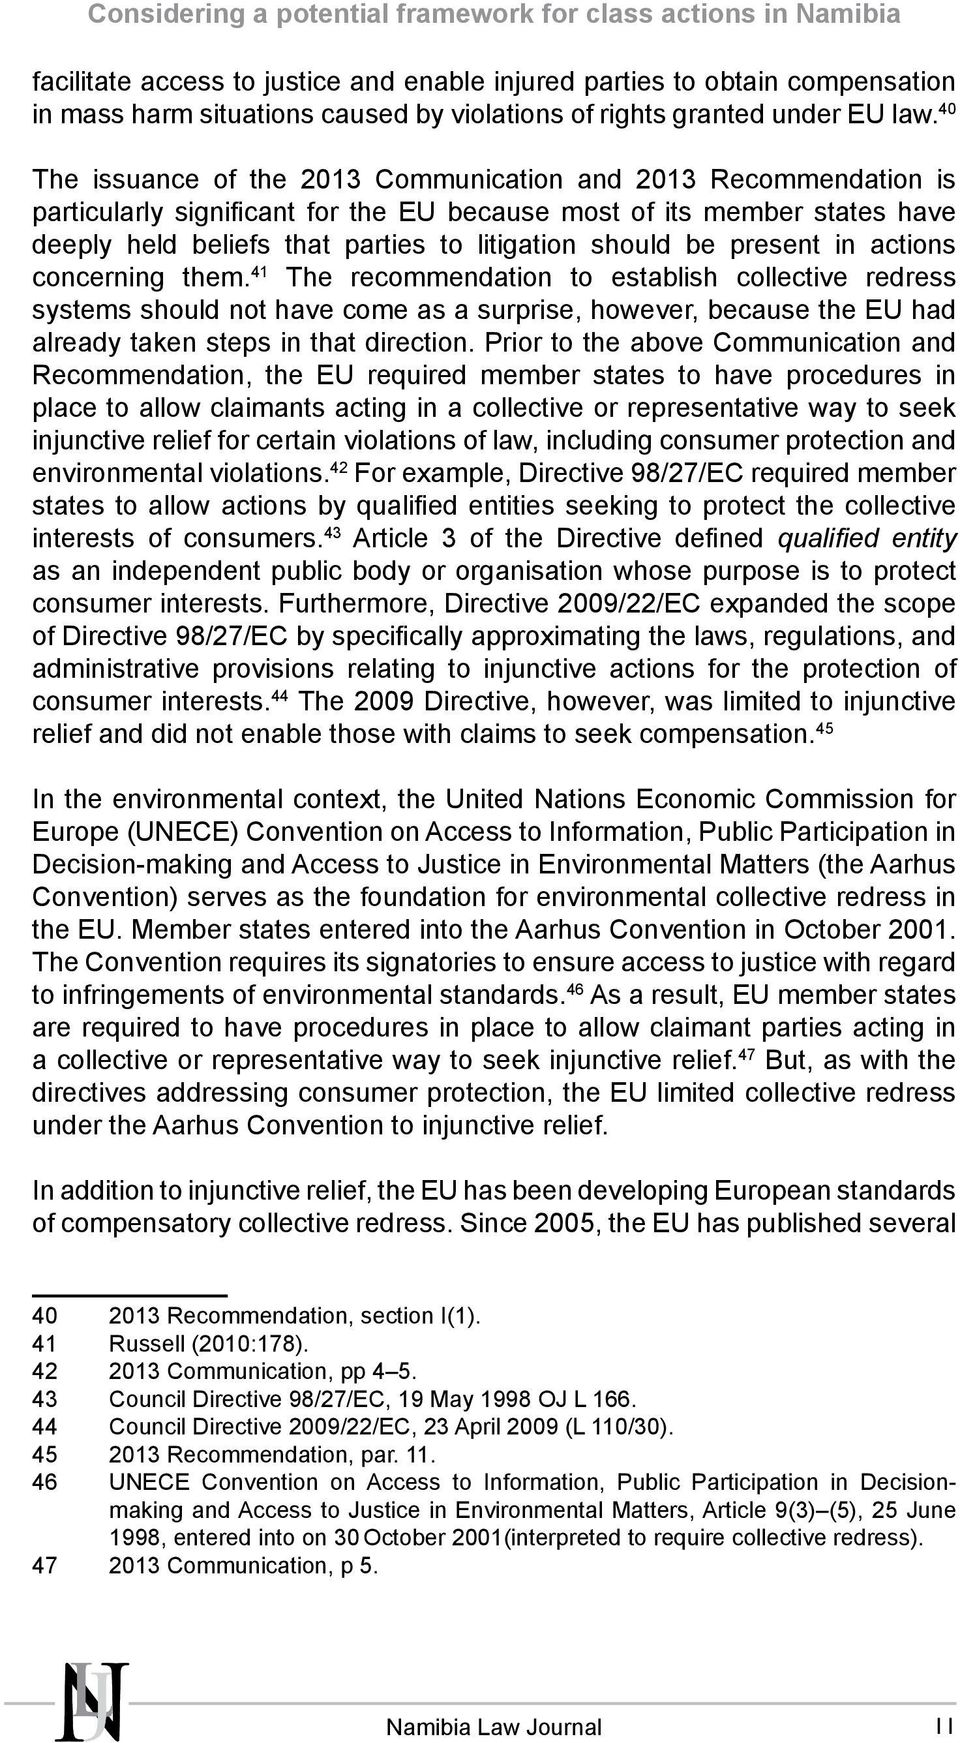 40 The issuance of the 2013 Communication and 2013 Recommendation is particularly significant for the EU because most of its member states have deeply held beliefs that parties to litigation should